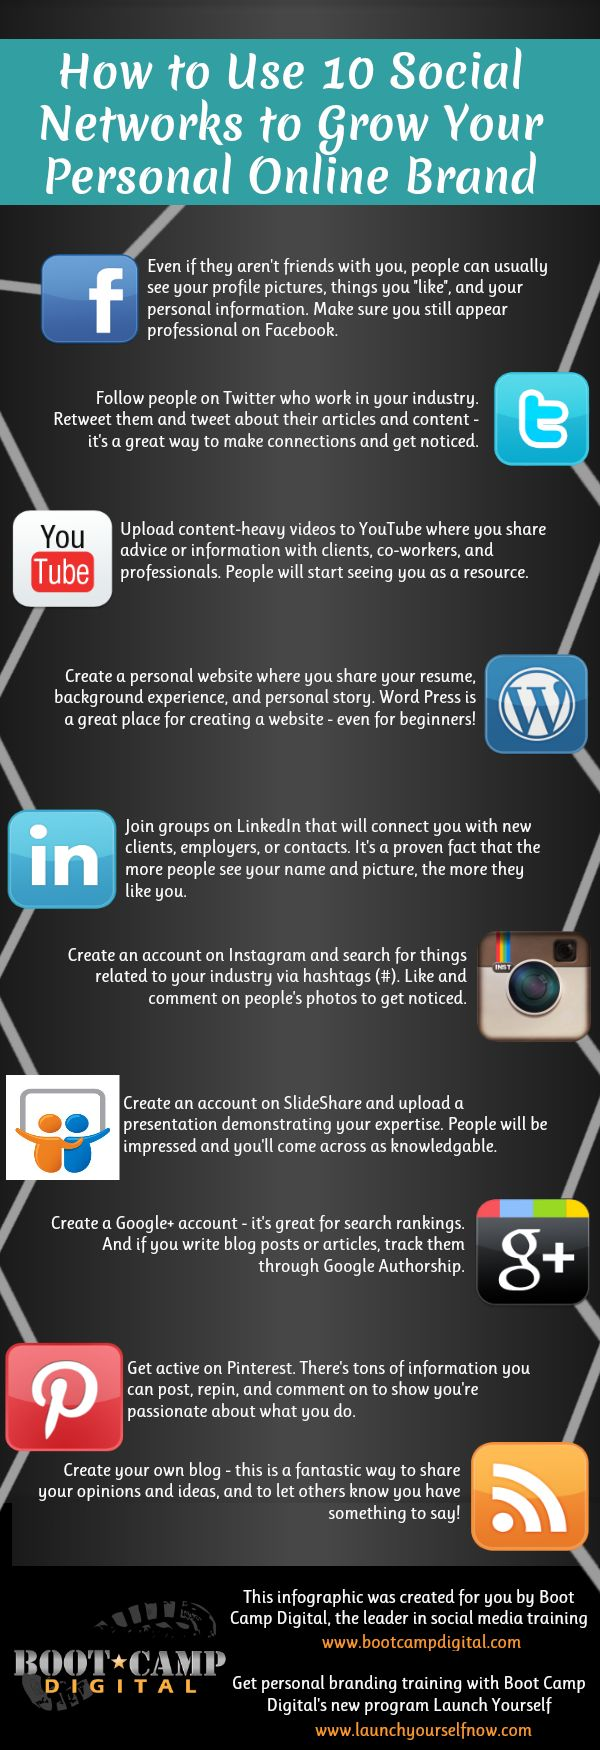 best ideas about personal branding personal 10 sites to grow your online personal brand